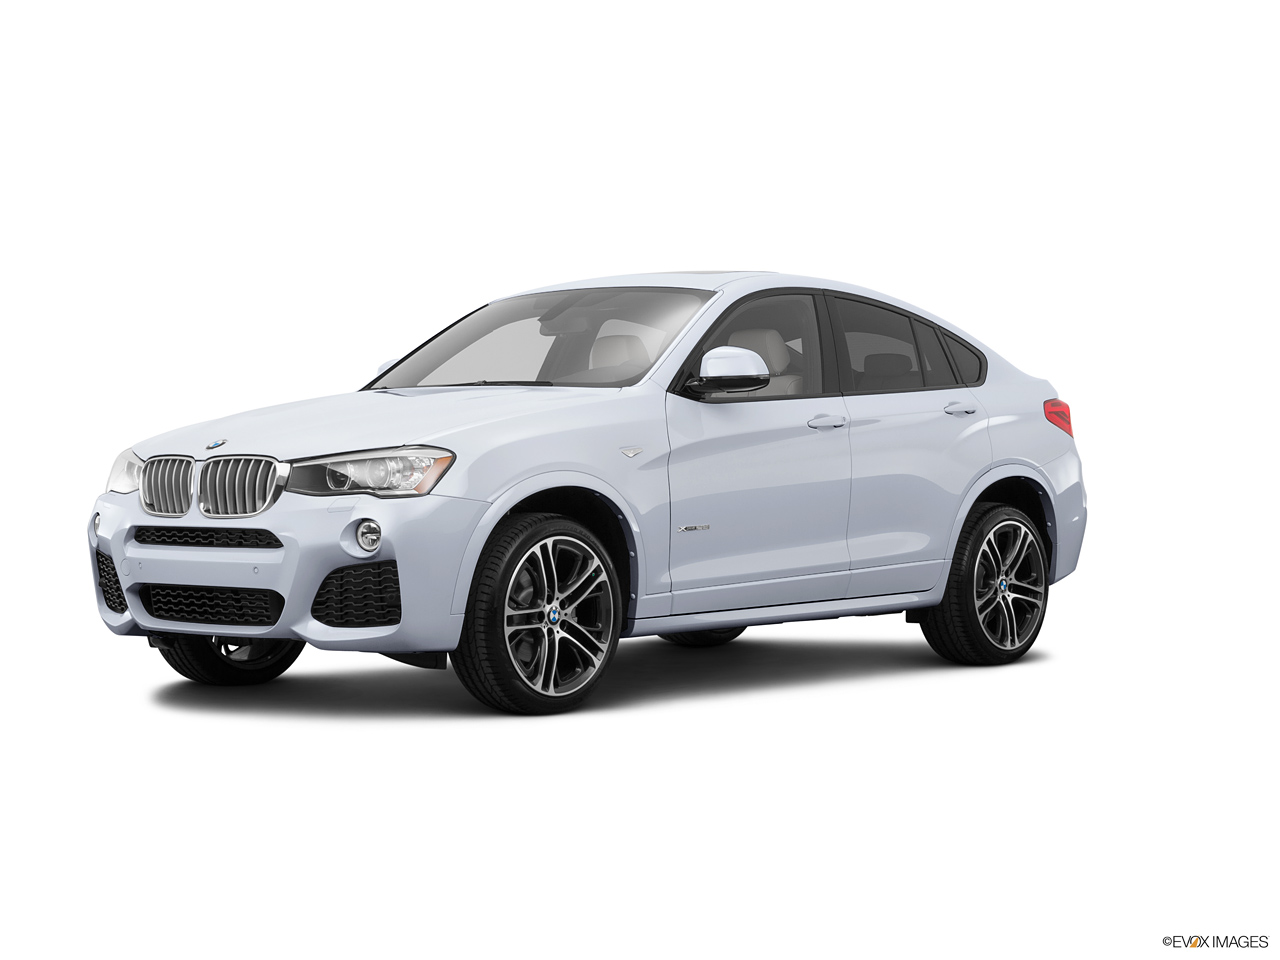 Bmw X4 2017 Xdrive 28i In Oman New Car Prices Specs